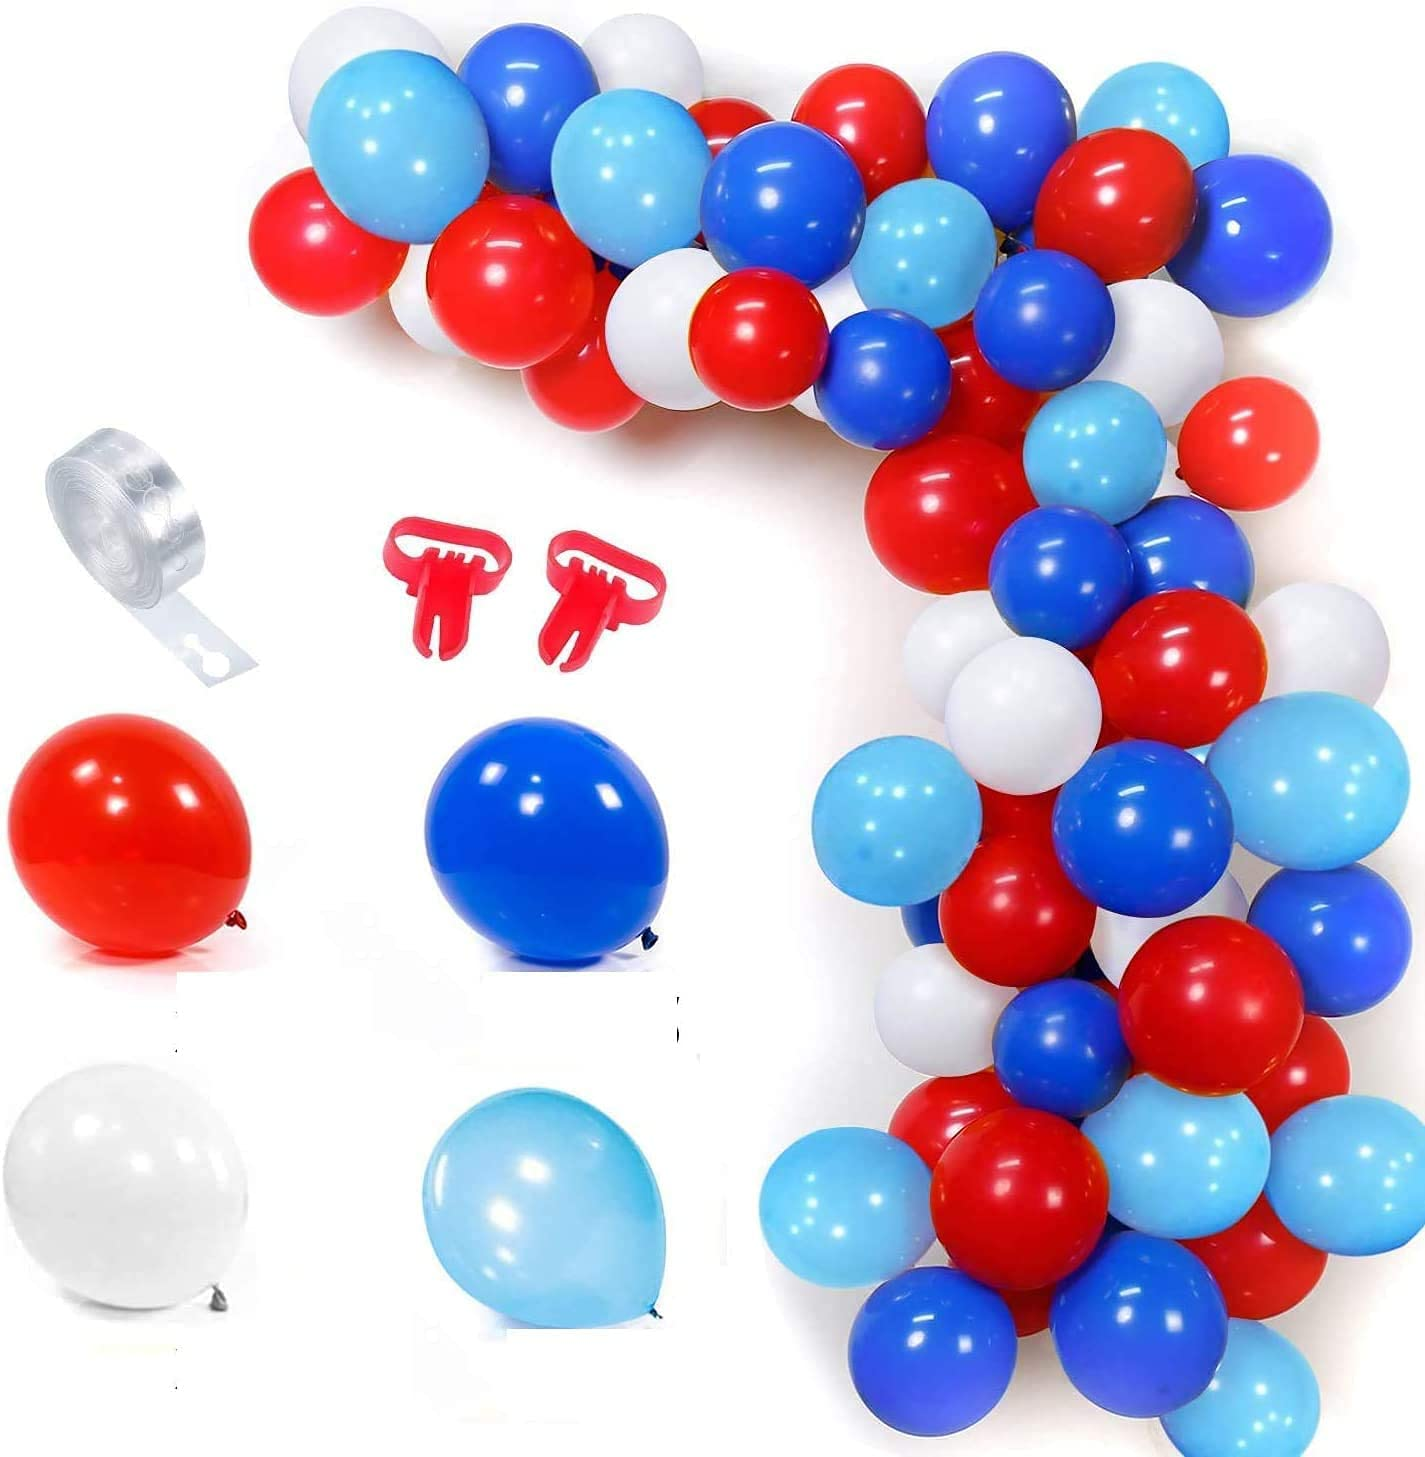 100PCS Red White Blue Balloon Garland Kit for Boys Men Royal Navy Blue Party Decorations Arch Balloons Set with 16ft Balloon Stripe Tape Chain for Birthday Graduations Themed Party Home Decor